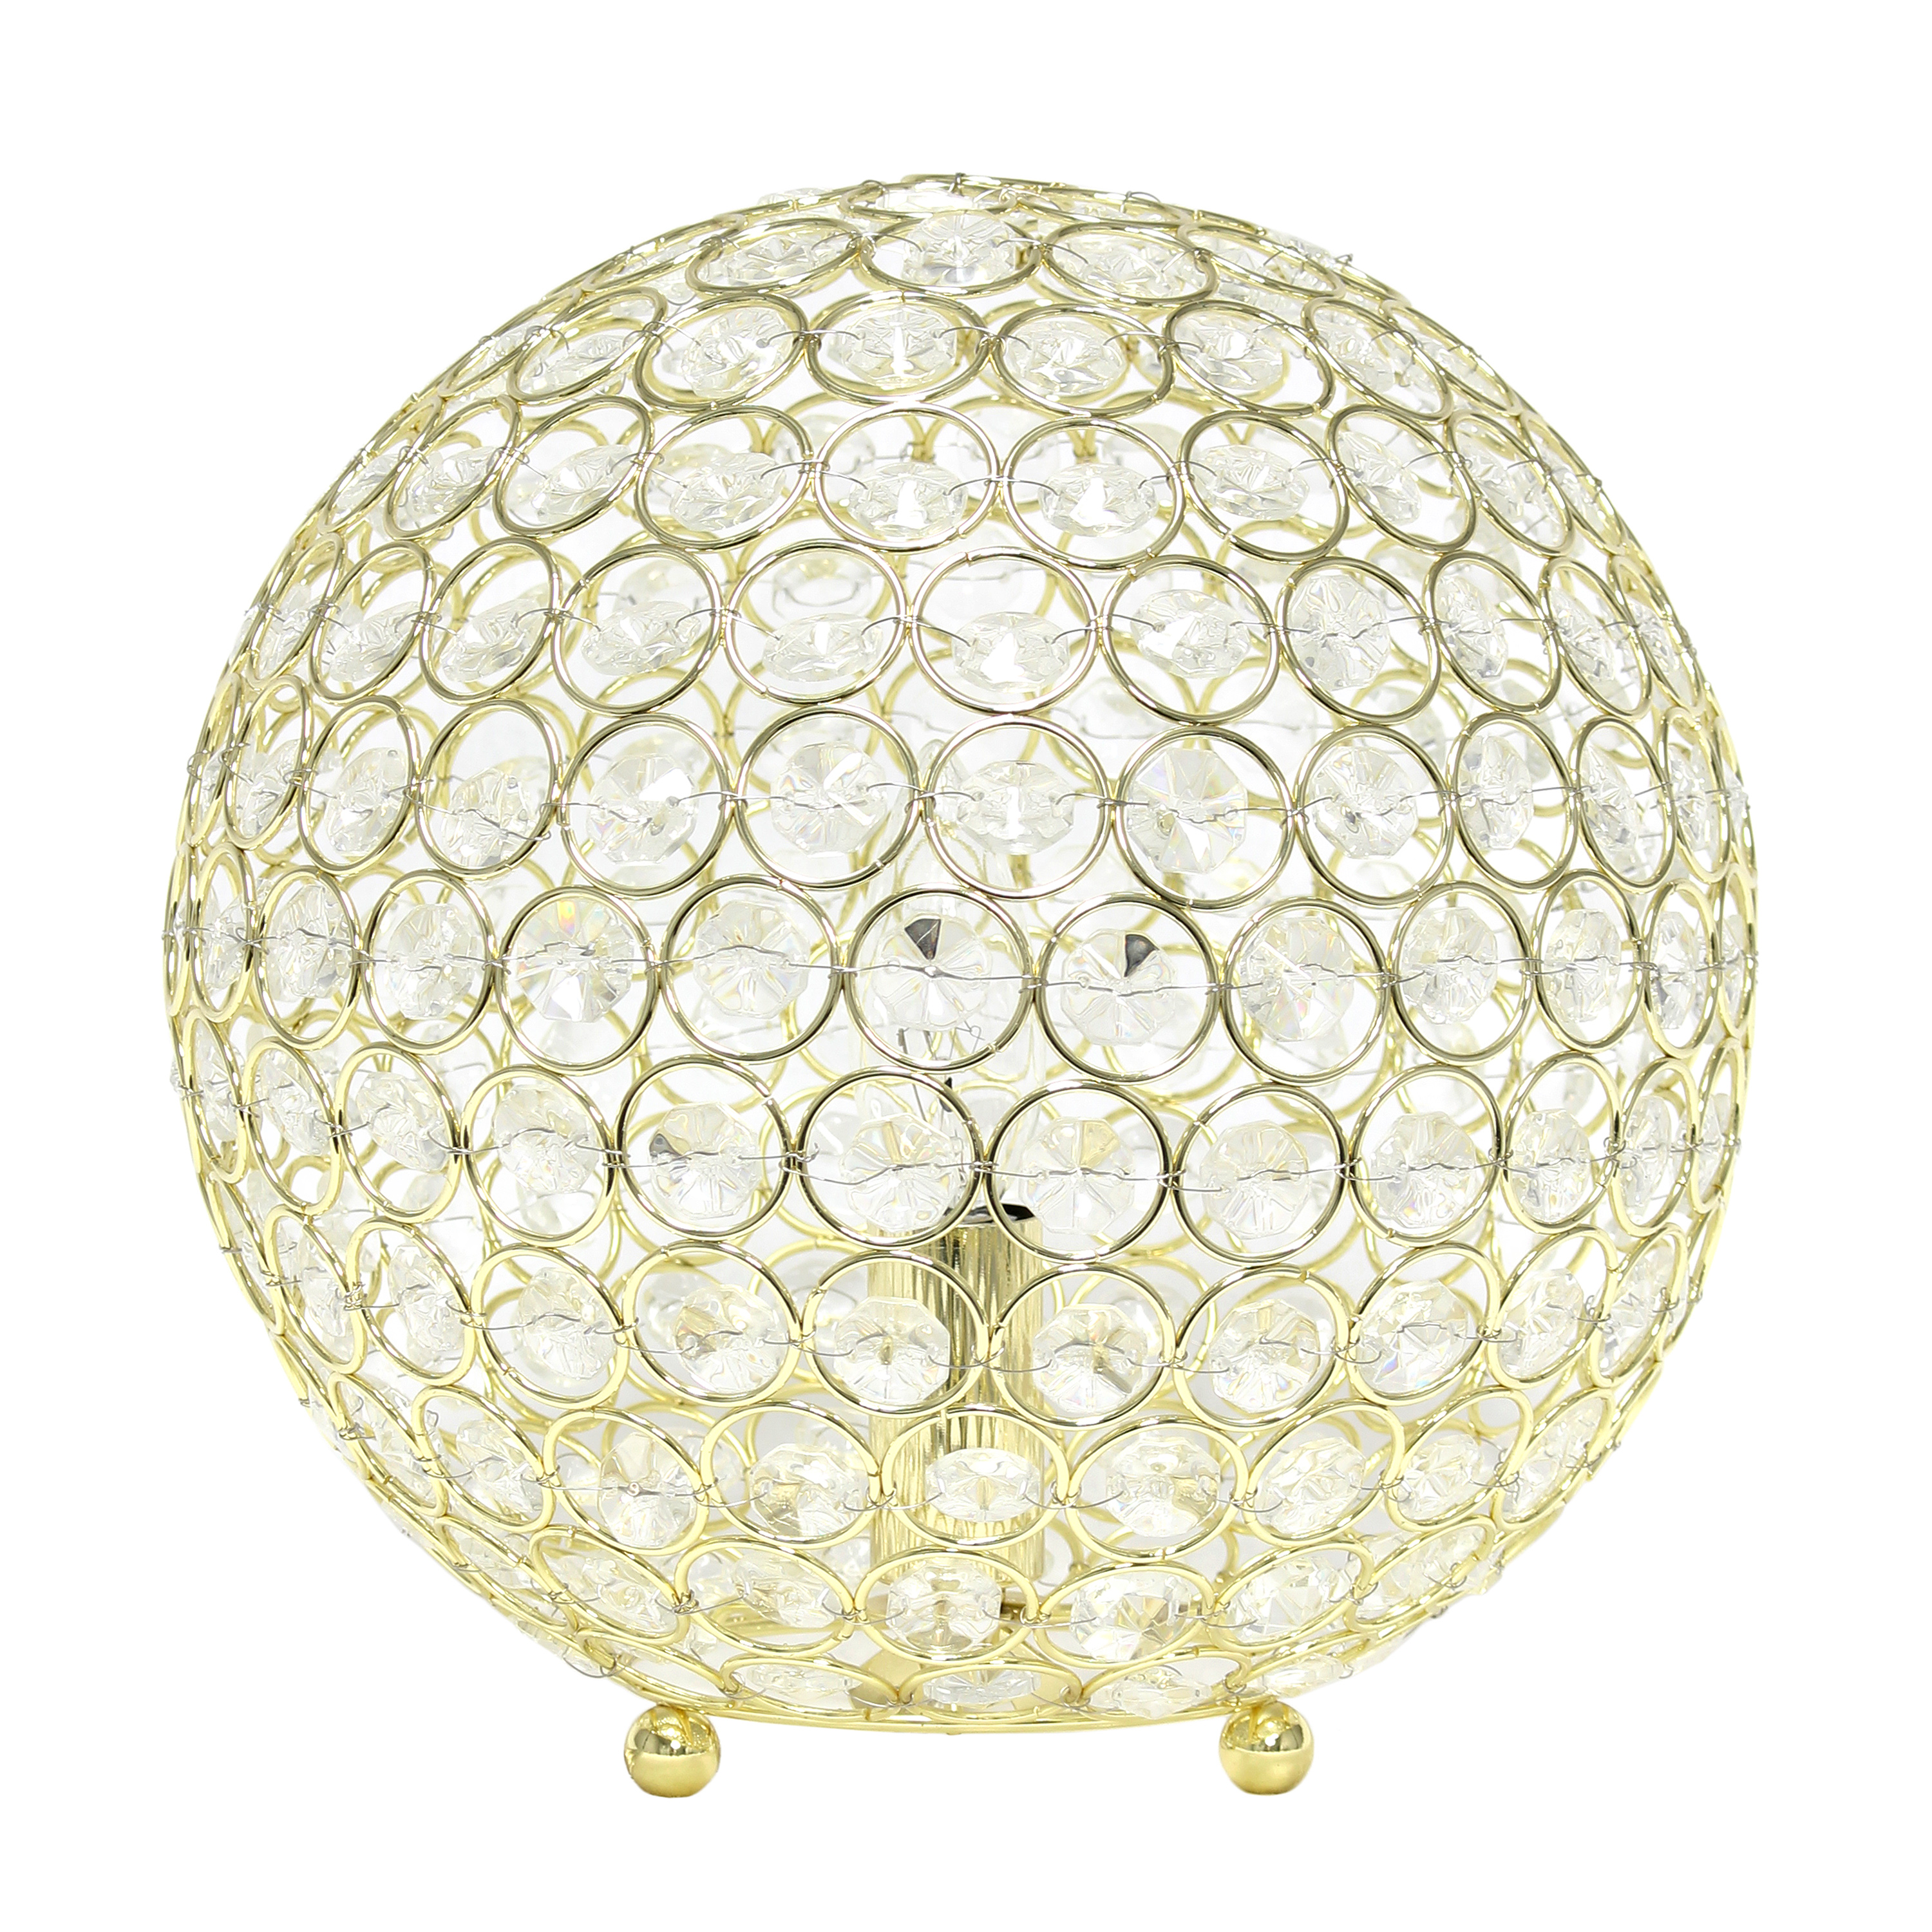 Elegant Designs Elipse 10 Inch Crystal Ball Sequin Table Lamp, Gold